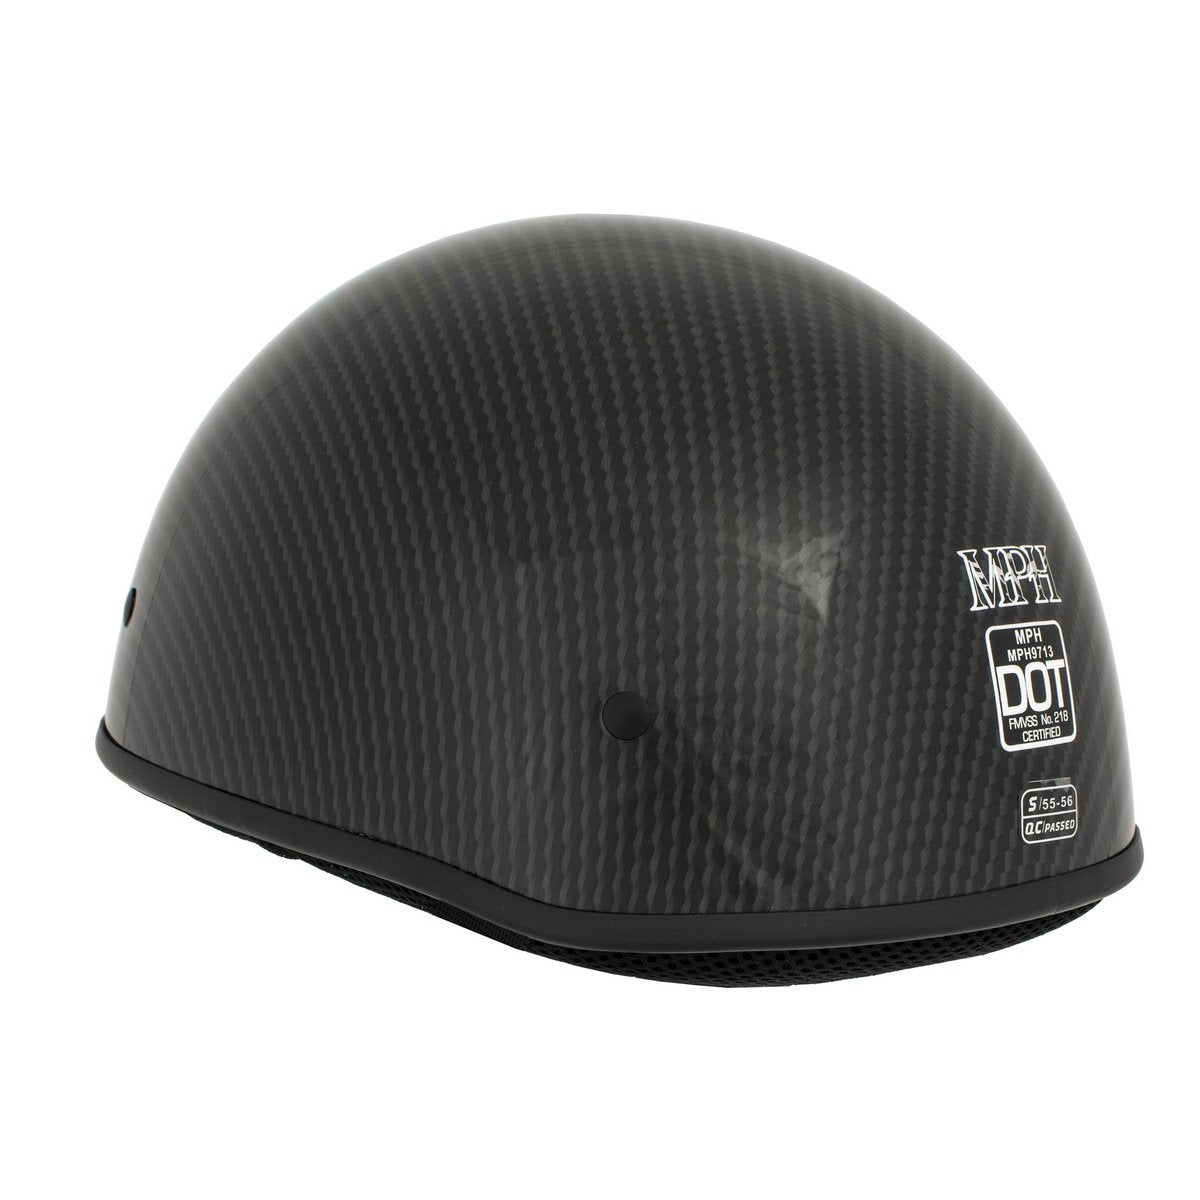 Milwaukee Performance Helmet MPH9713DOT Glossy Black DOT Half Helmet with Carbon Fiber Look